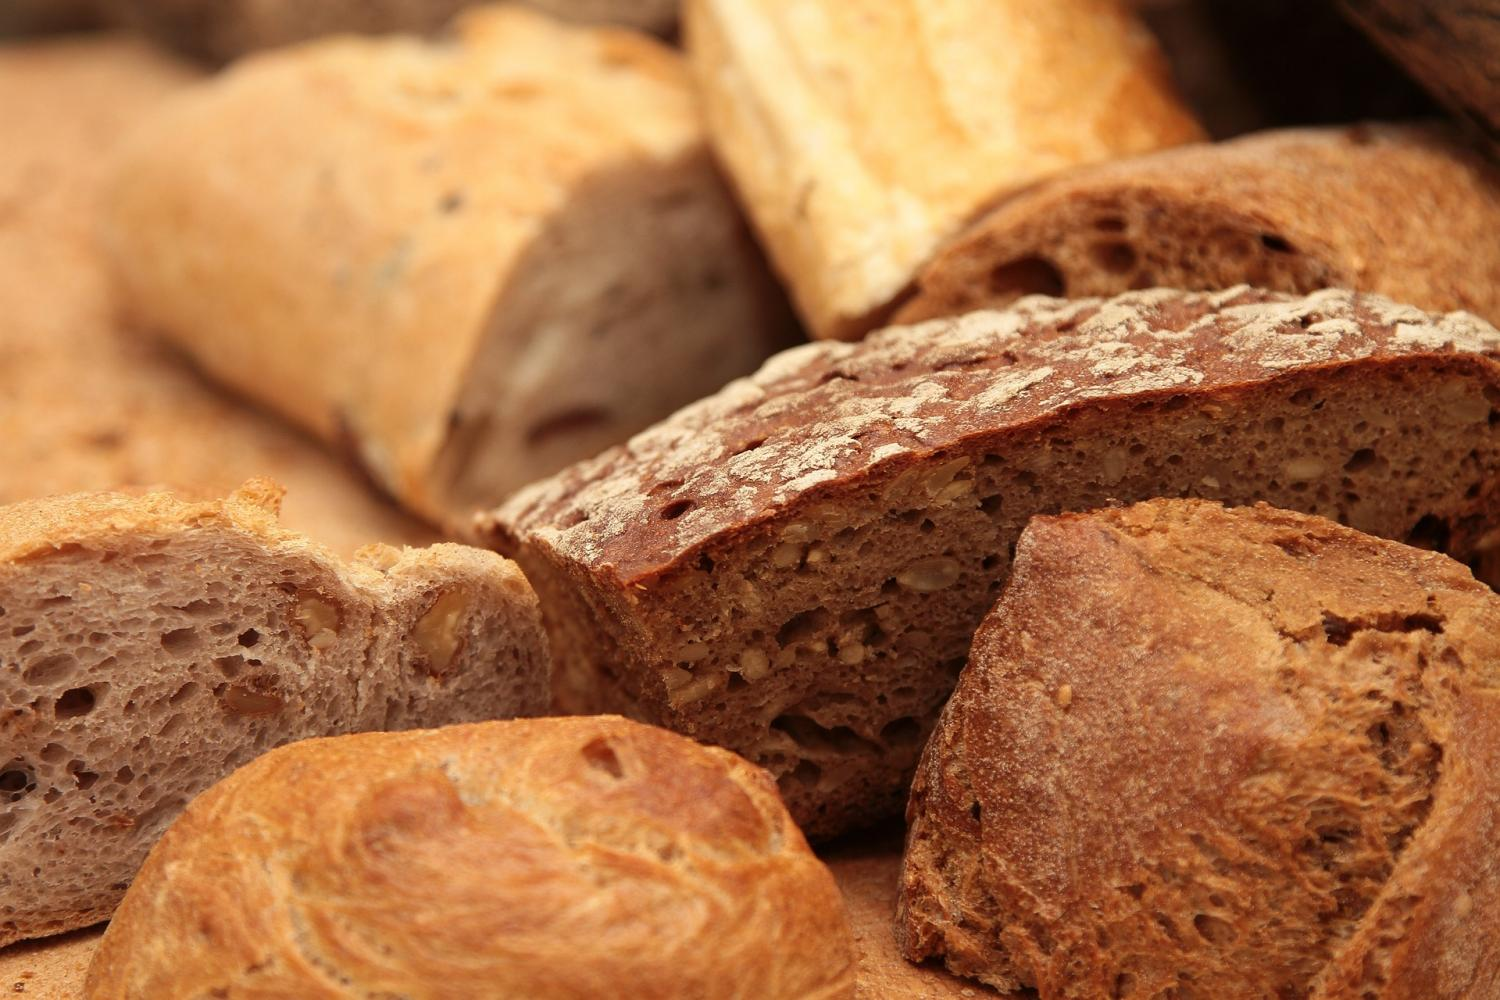 Scientists bake gluten-free bread using a revolutionary technology